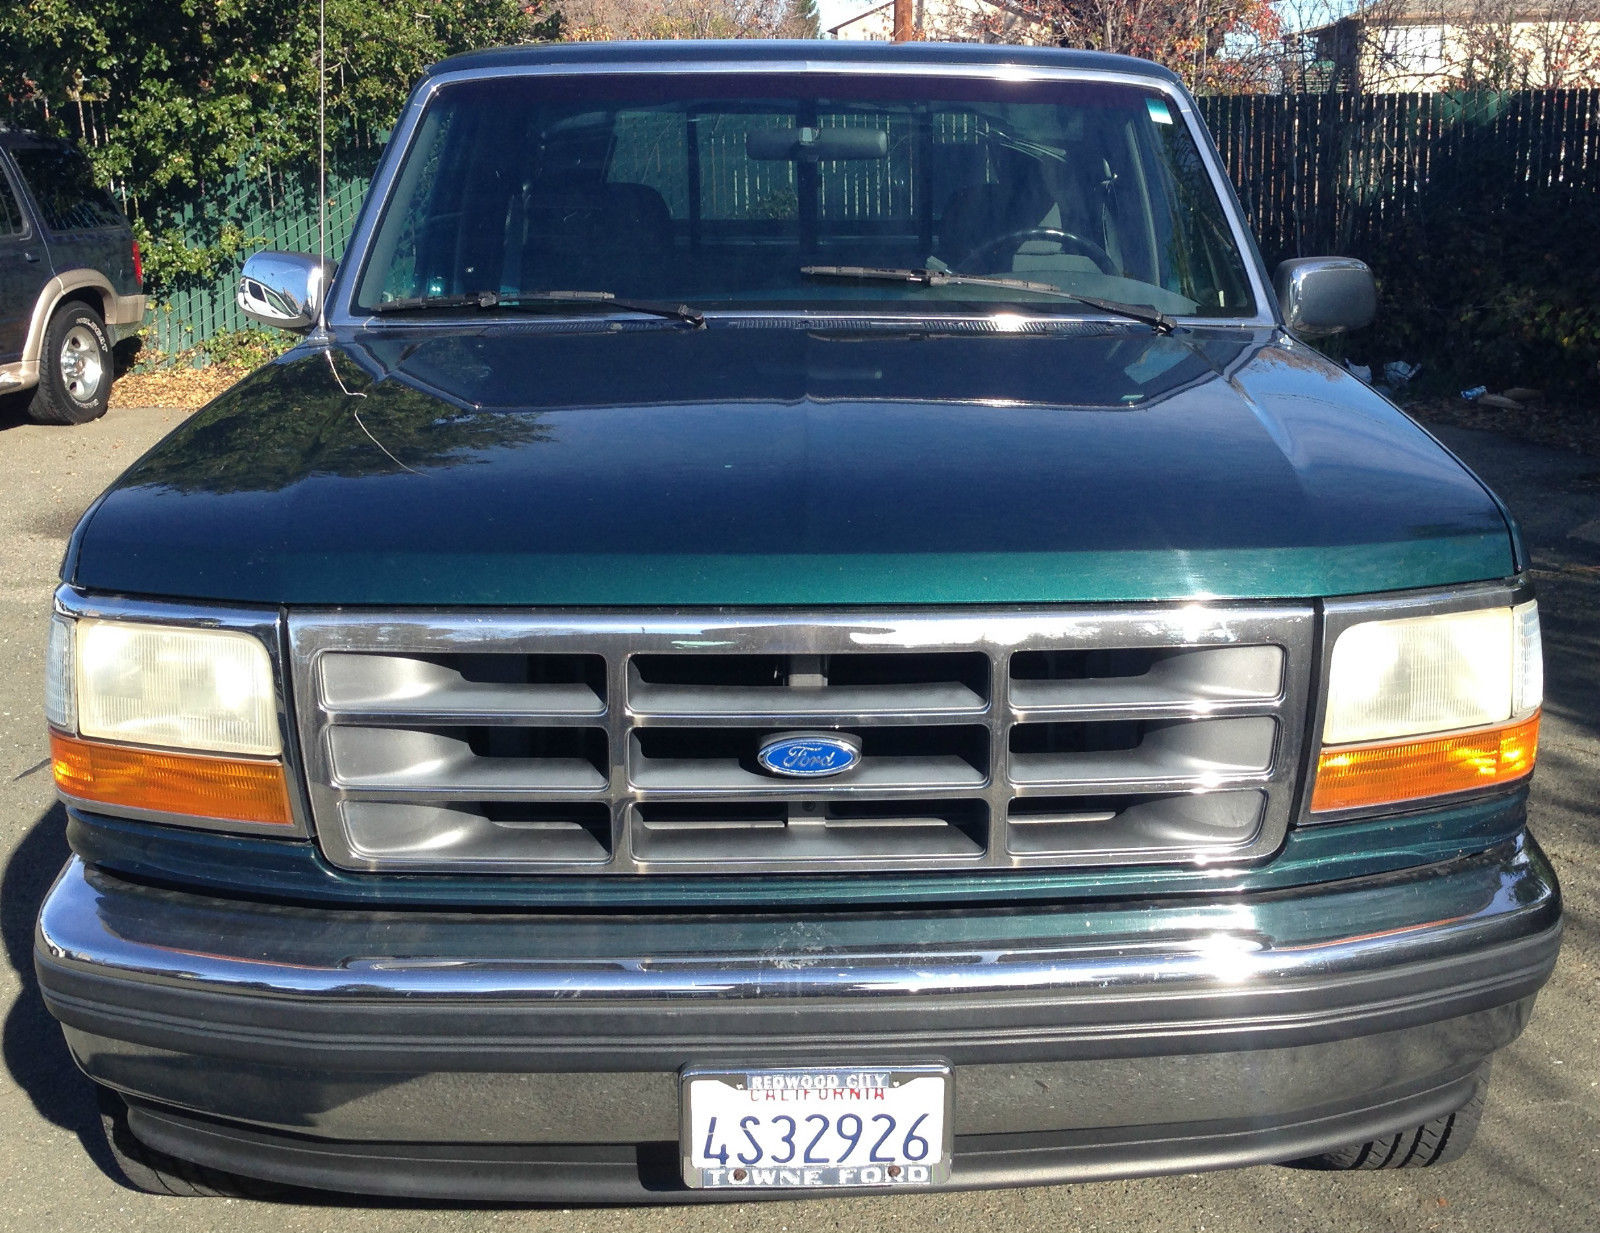 1993 Ford F-150 Xlt Regular Cab Pickup With Shell - One Owner